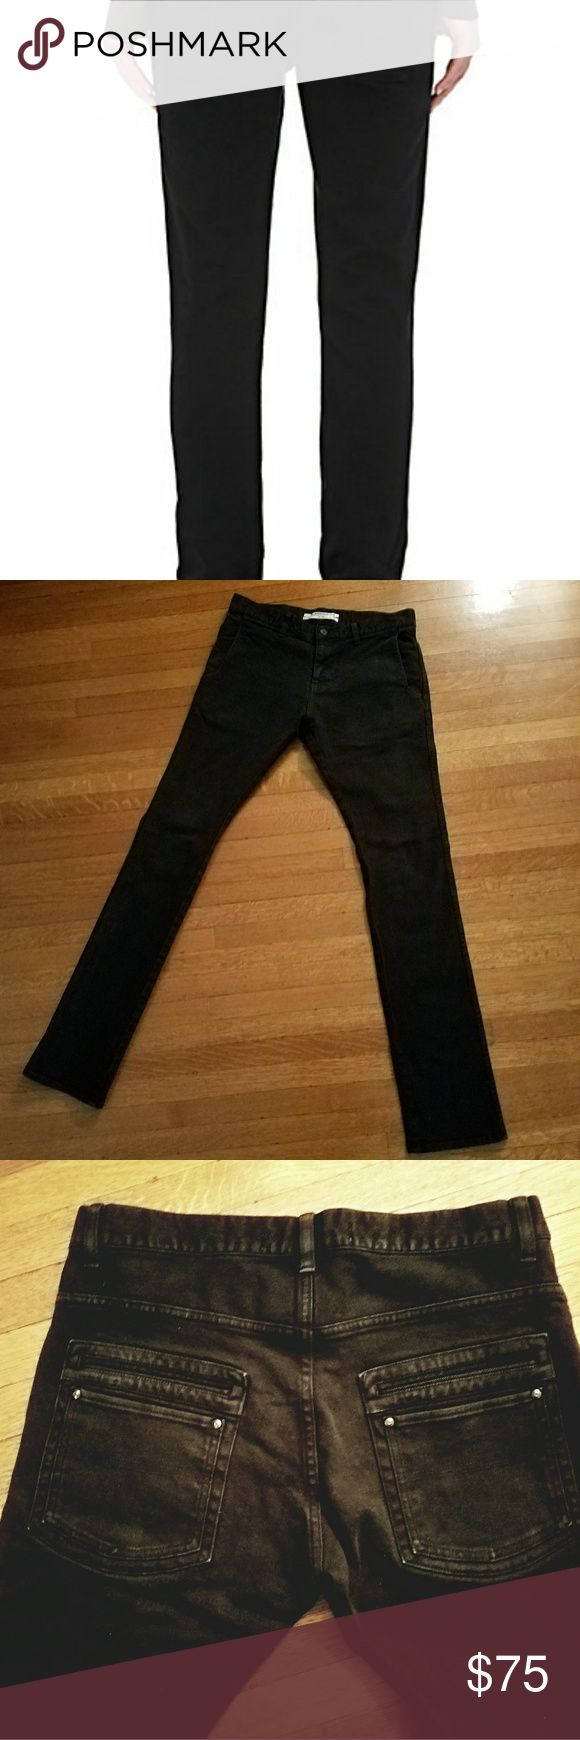 ROBERT GELLER MEN'S SKINNY JEANS BARELY EVER WORN, CONDITION IS EXCELLENT. BEAUTIFULLY MADE. 2 POCKETS IN FRONT, 4 IN BACK. WAIST IS 32-33 INCHES. THESE STRETCH. INSEAM IS 34 INCHES Robert Geller Jeans Skinny